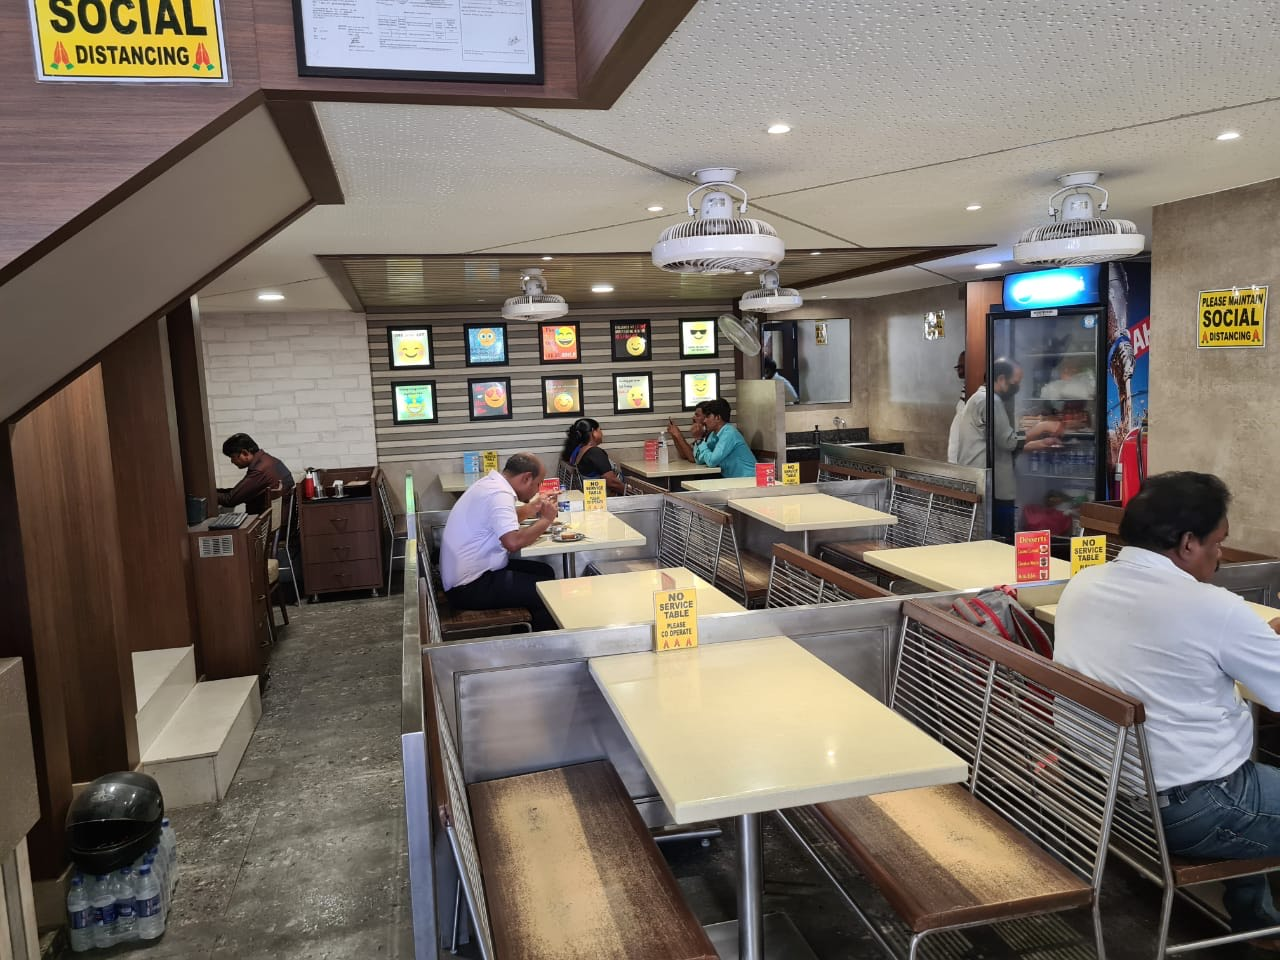 Indian Restaurants Cautiously Reopen For Dining-In After 6 Months